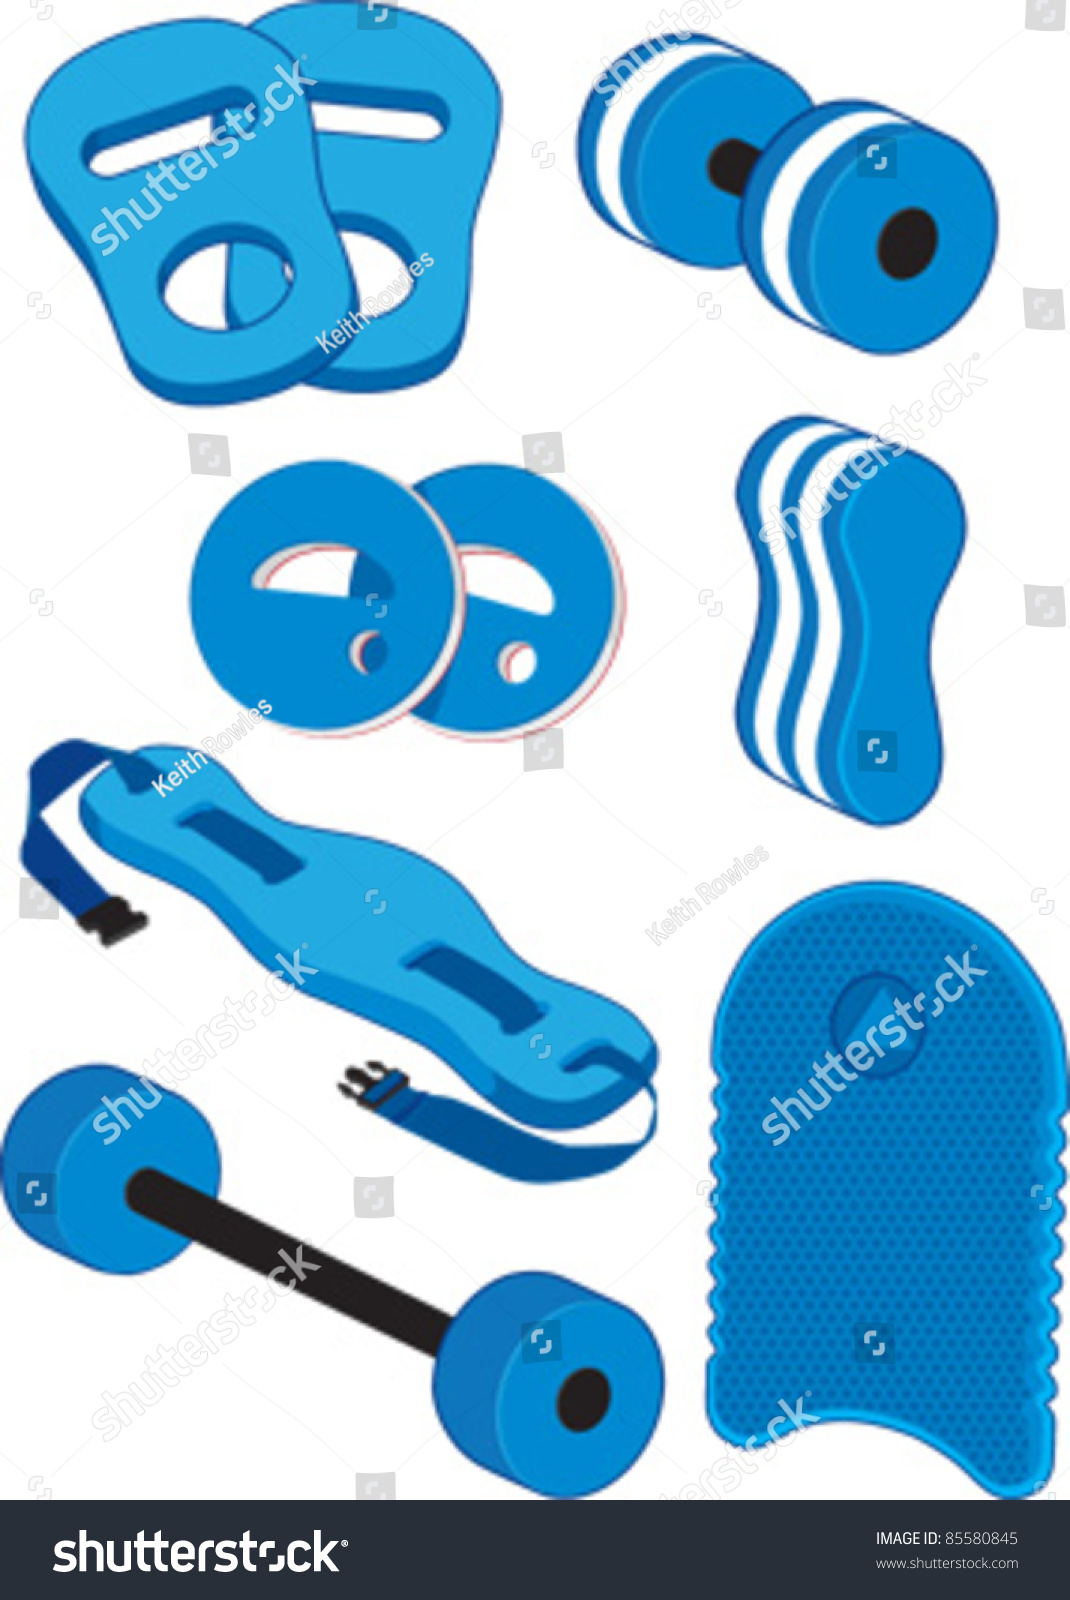 Aqua Fitness Swimming Aids And Water Aerobics Equipment For Water Workouts And Swimming Pool